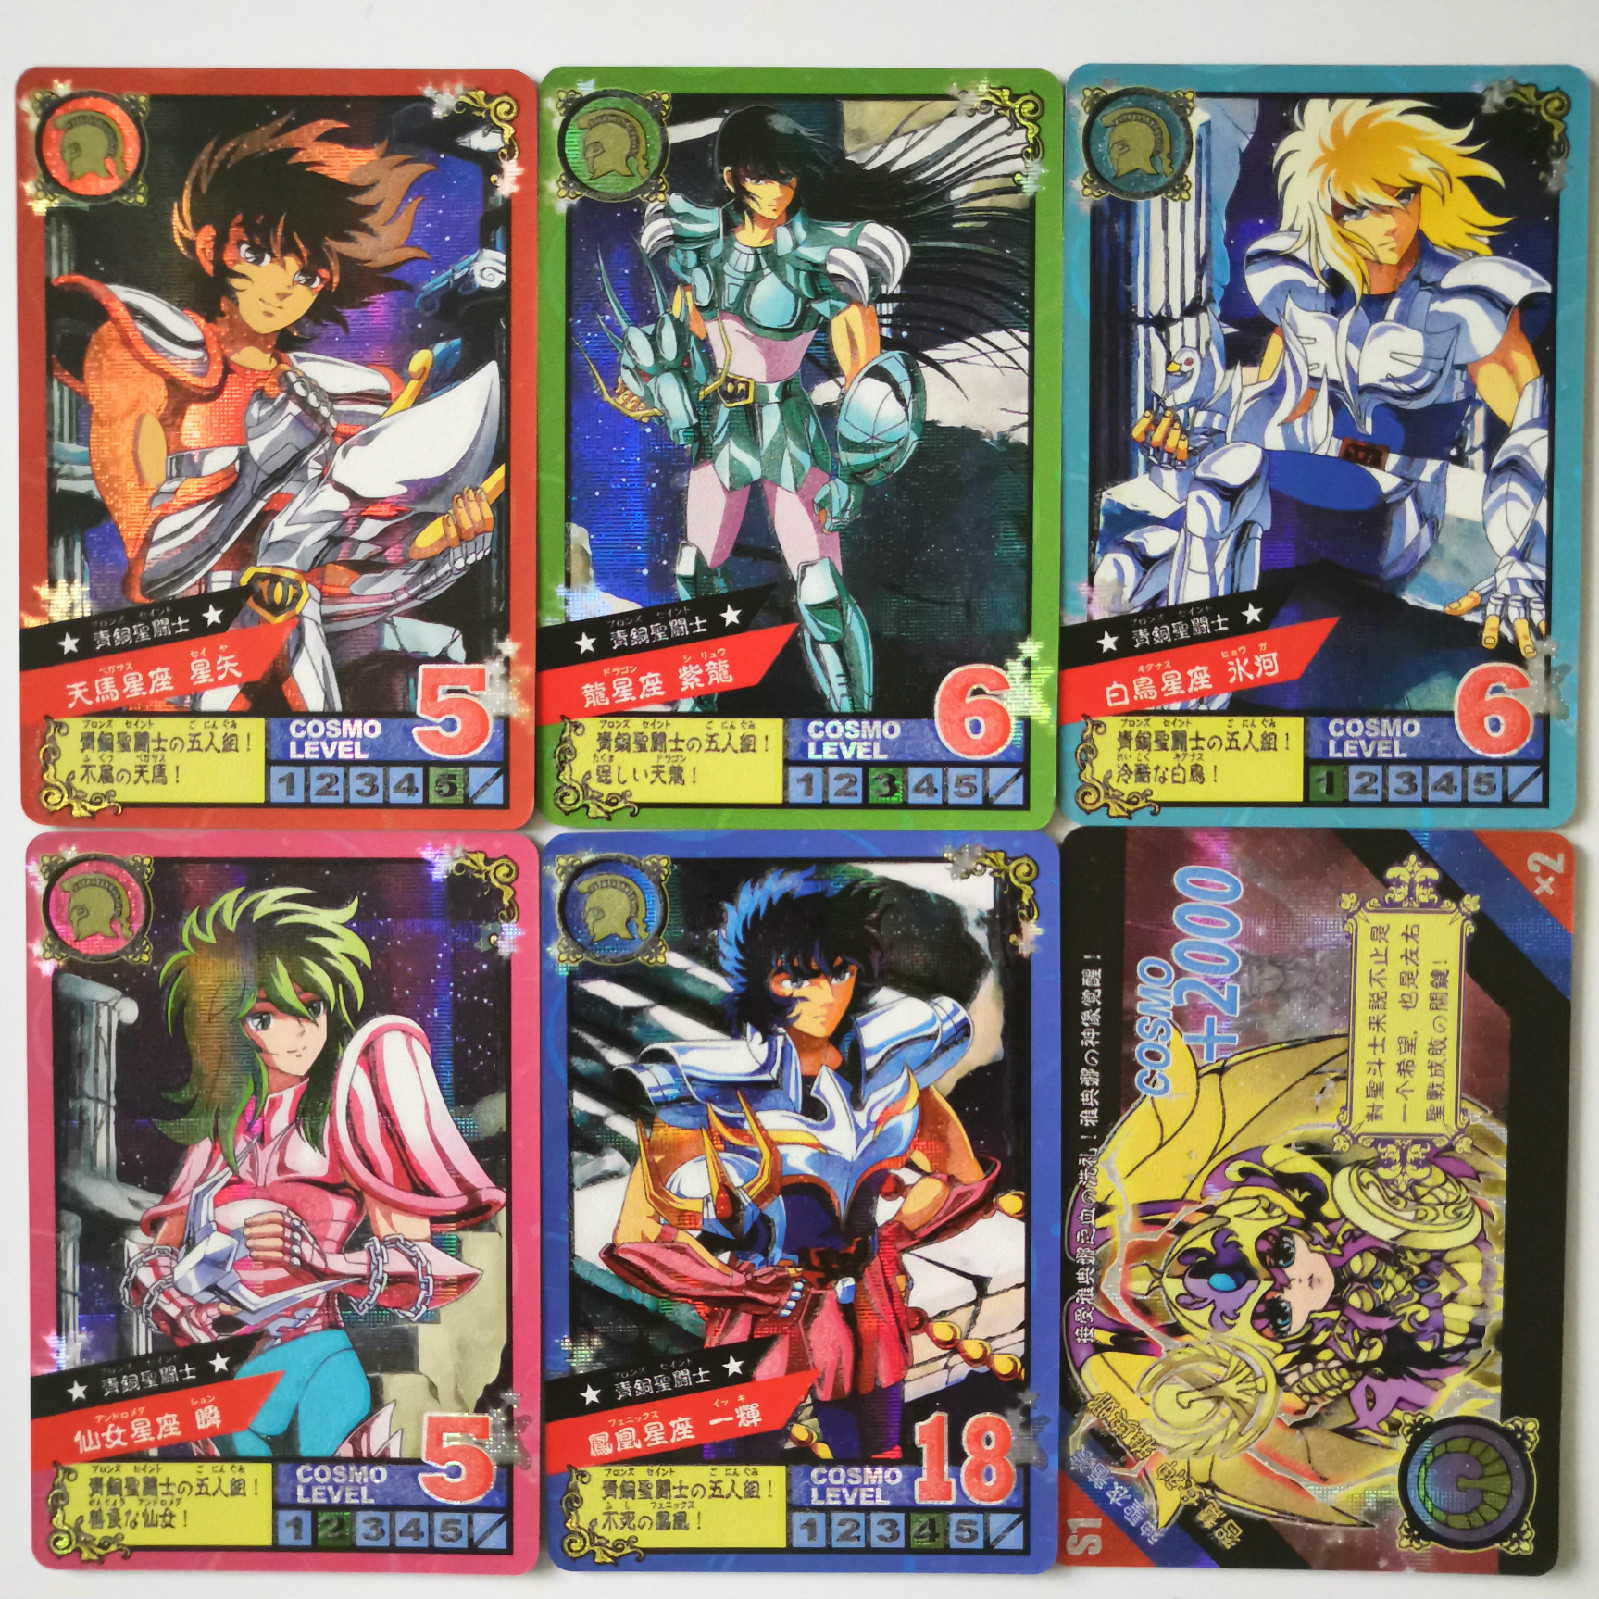 17pcs/set Saint Seiya Golden Five Big Stars Fighting Night Light Toys Hobbies Hobby Collectibles Game Collection Anime Cards